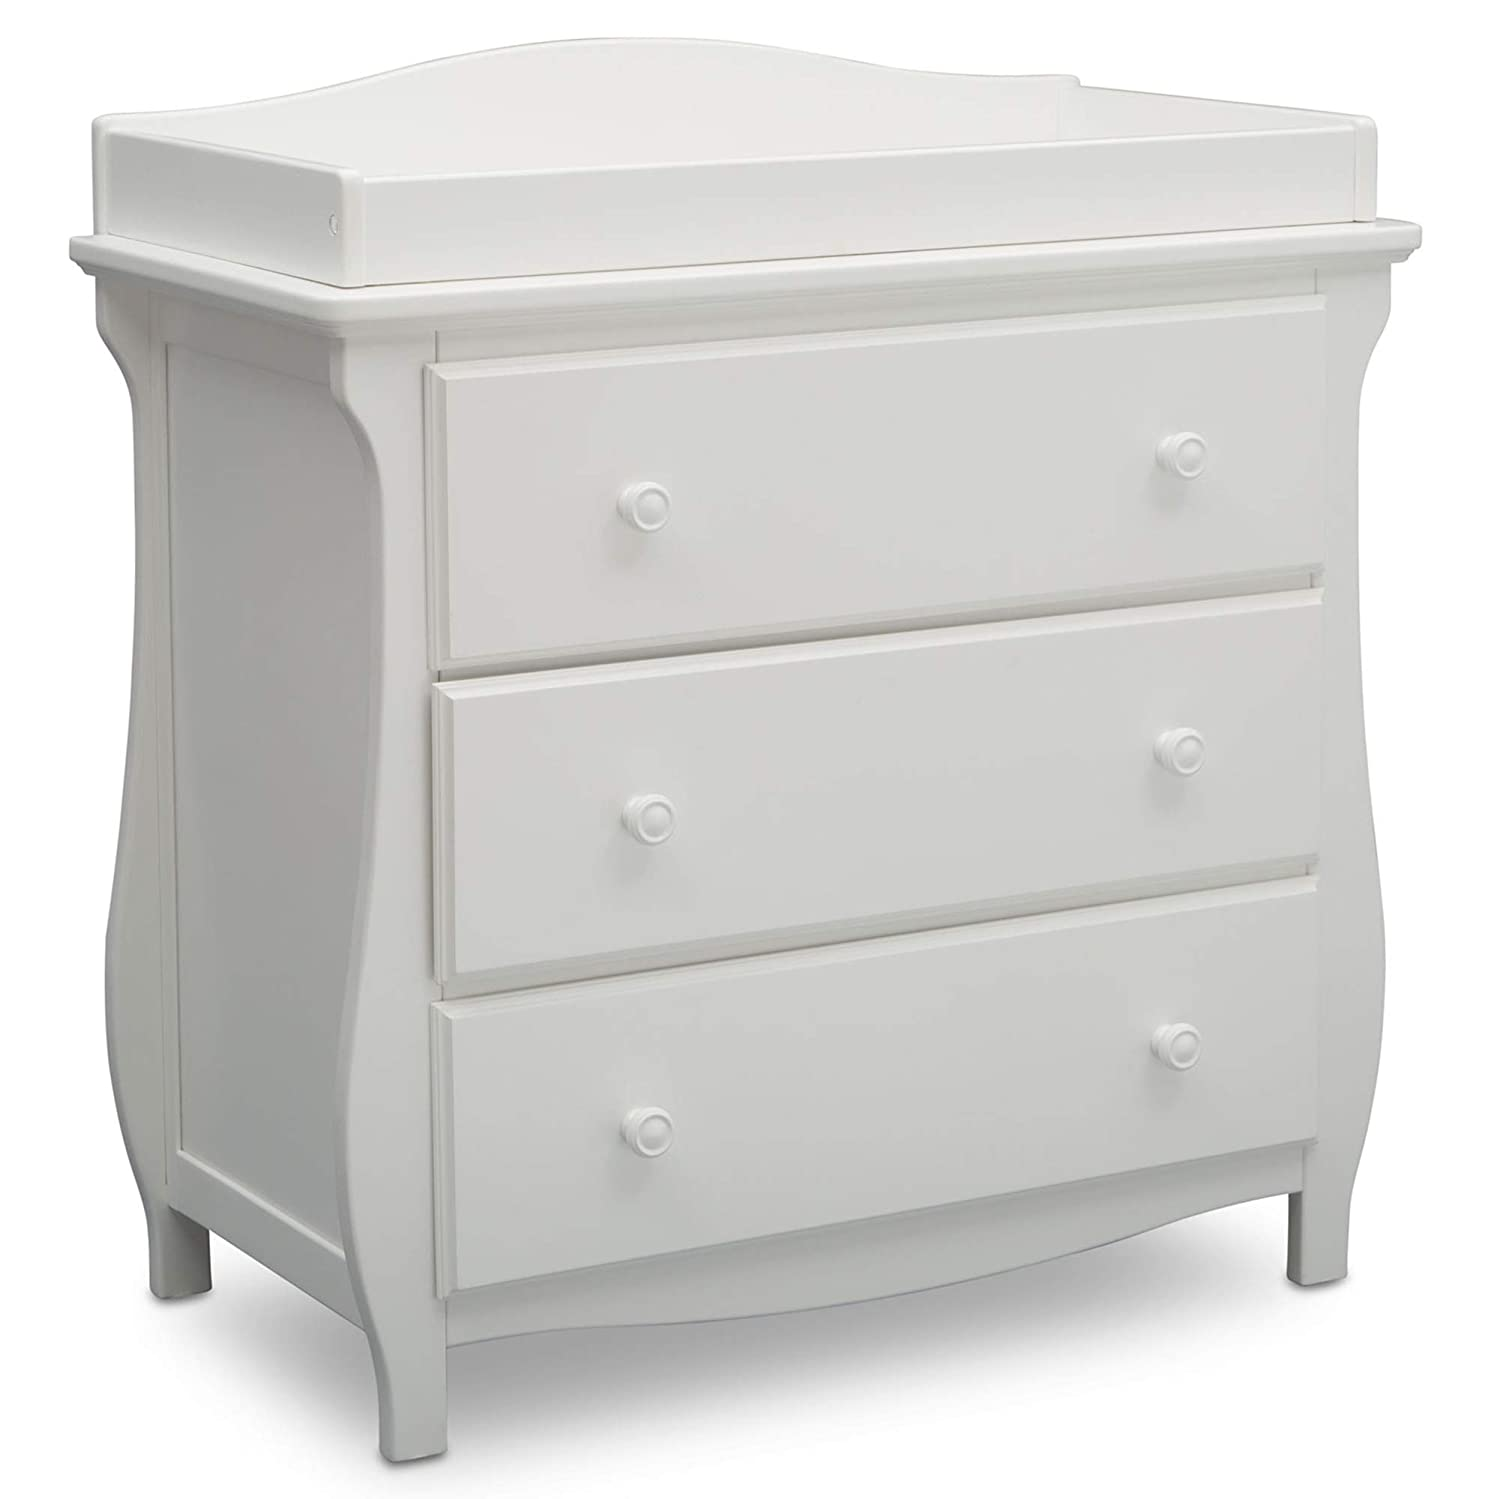 Delta Children Lancaster 3 Drawer Dresser with Changing Top, Grey Delta Enterprise Corp - PLA 552030-026